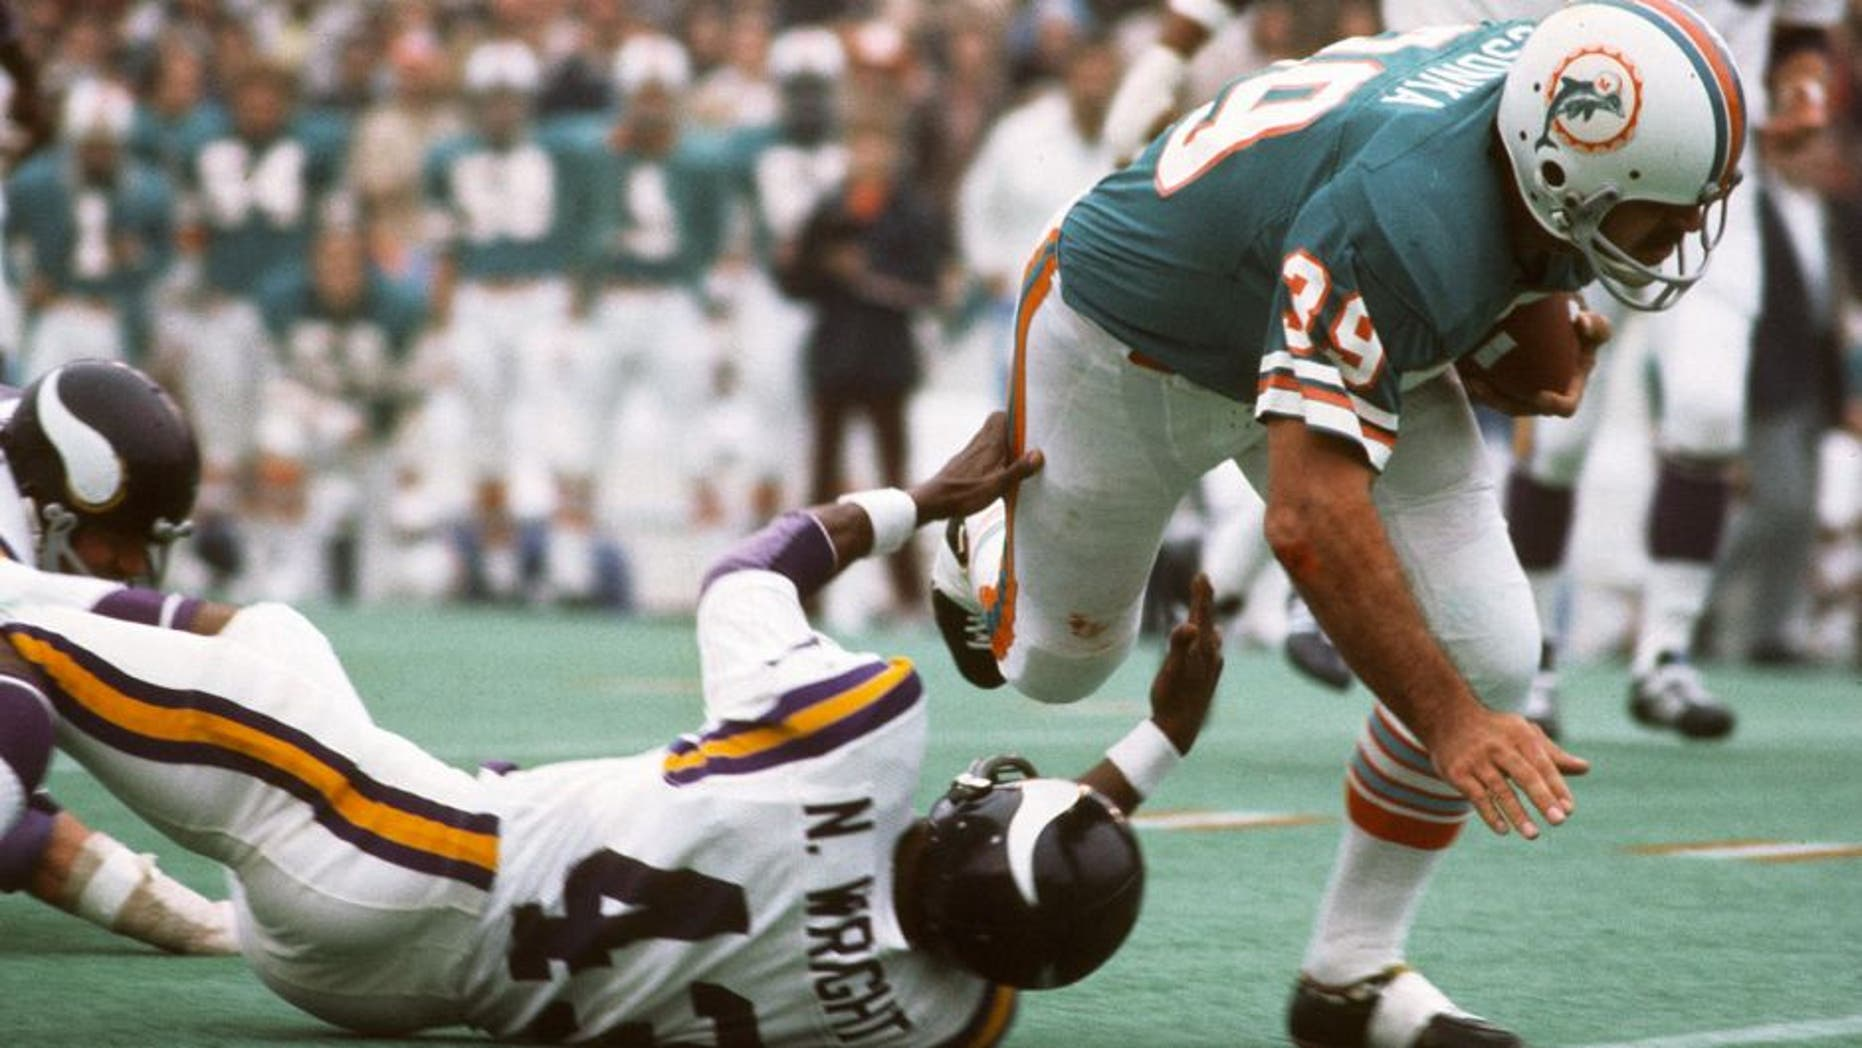 HOUSTON, TX - JANUARY 13: Larry Csonka #39 of the Miami Dolphins runs through the tackle of Nate Wright #43 of the Minnesota Vikings during Super Bowl VIII at Rice Stadium January 13, 1974 in Houston, Texas. The Dolphins won the Super Bowl 24-7. (Photo by Focus on Sport/Getty Images)